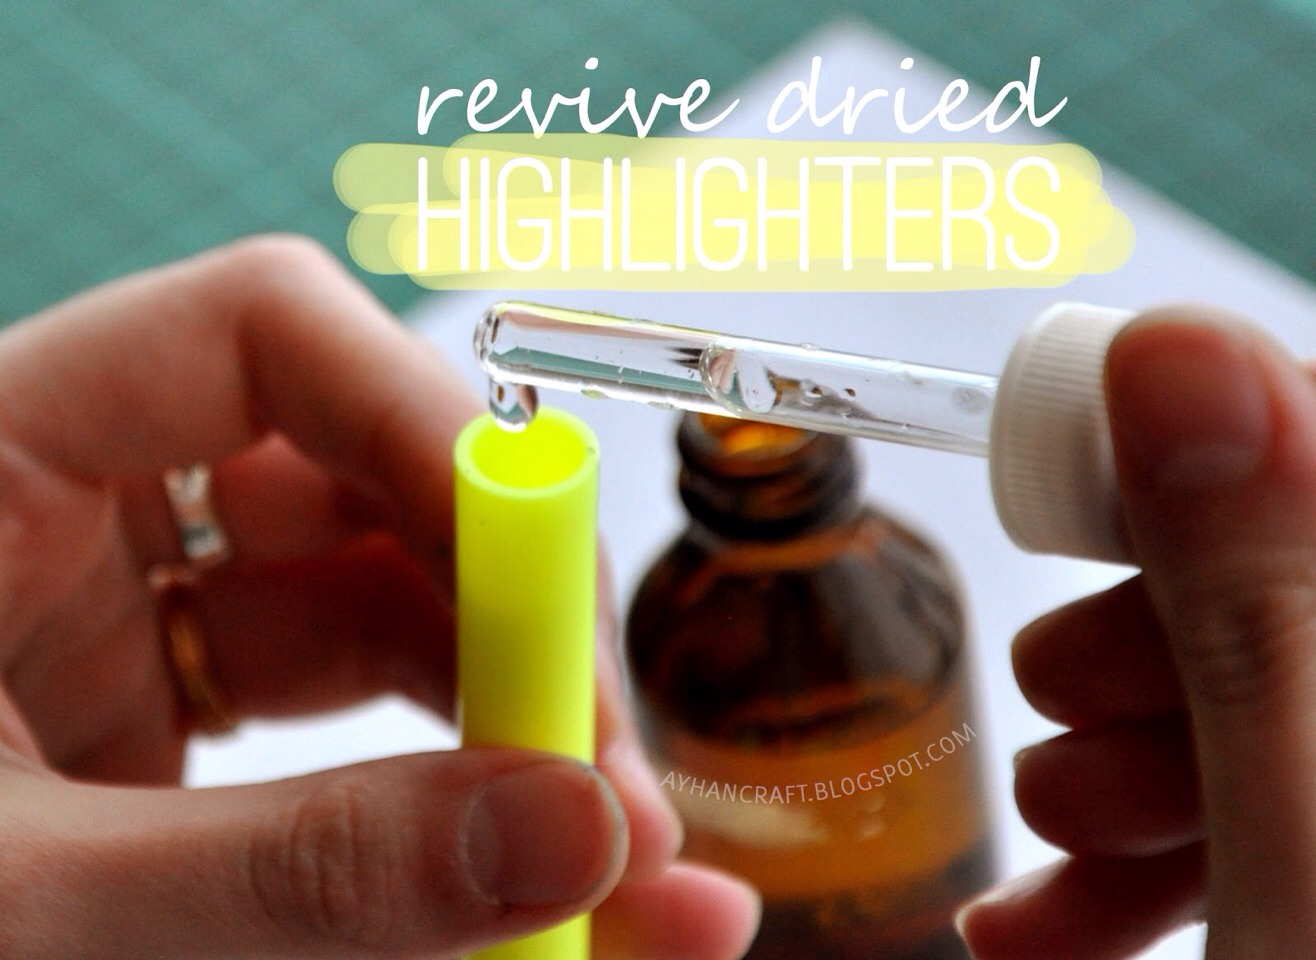 -> Basically, the idea is to open, add a few drops of water, and let it upside down for one day to antoher...  -> Do it at least 4 times for each highlighter and every time it will start working like new!